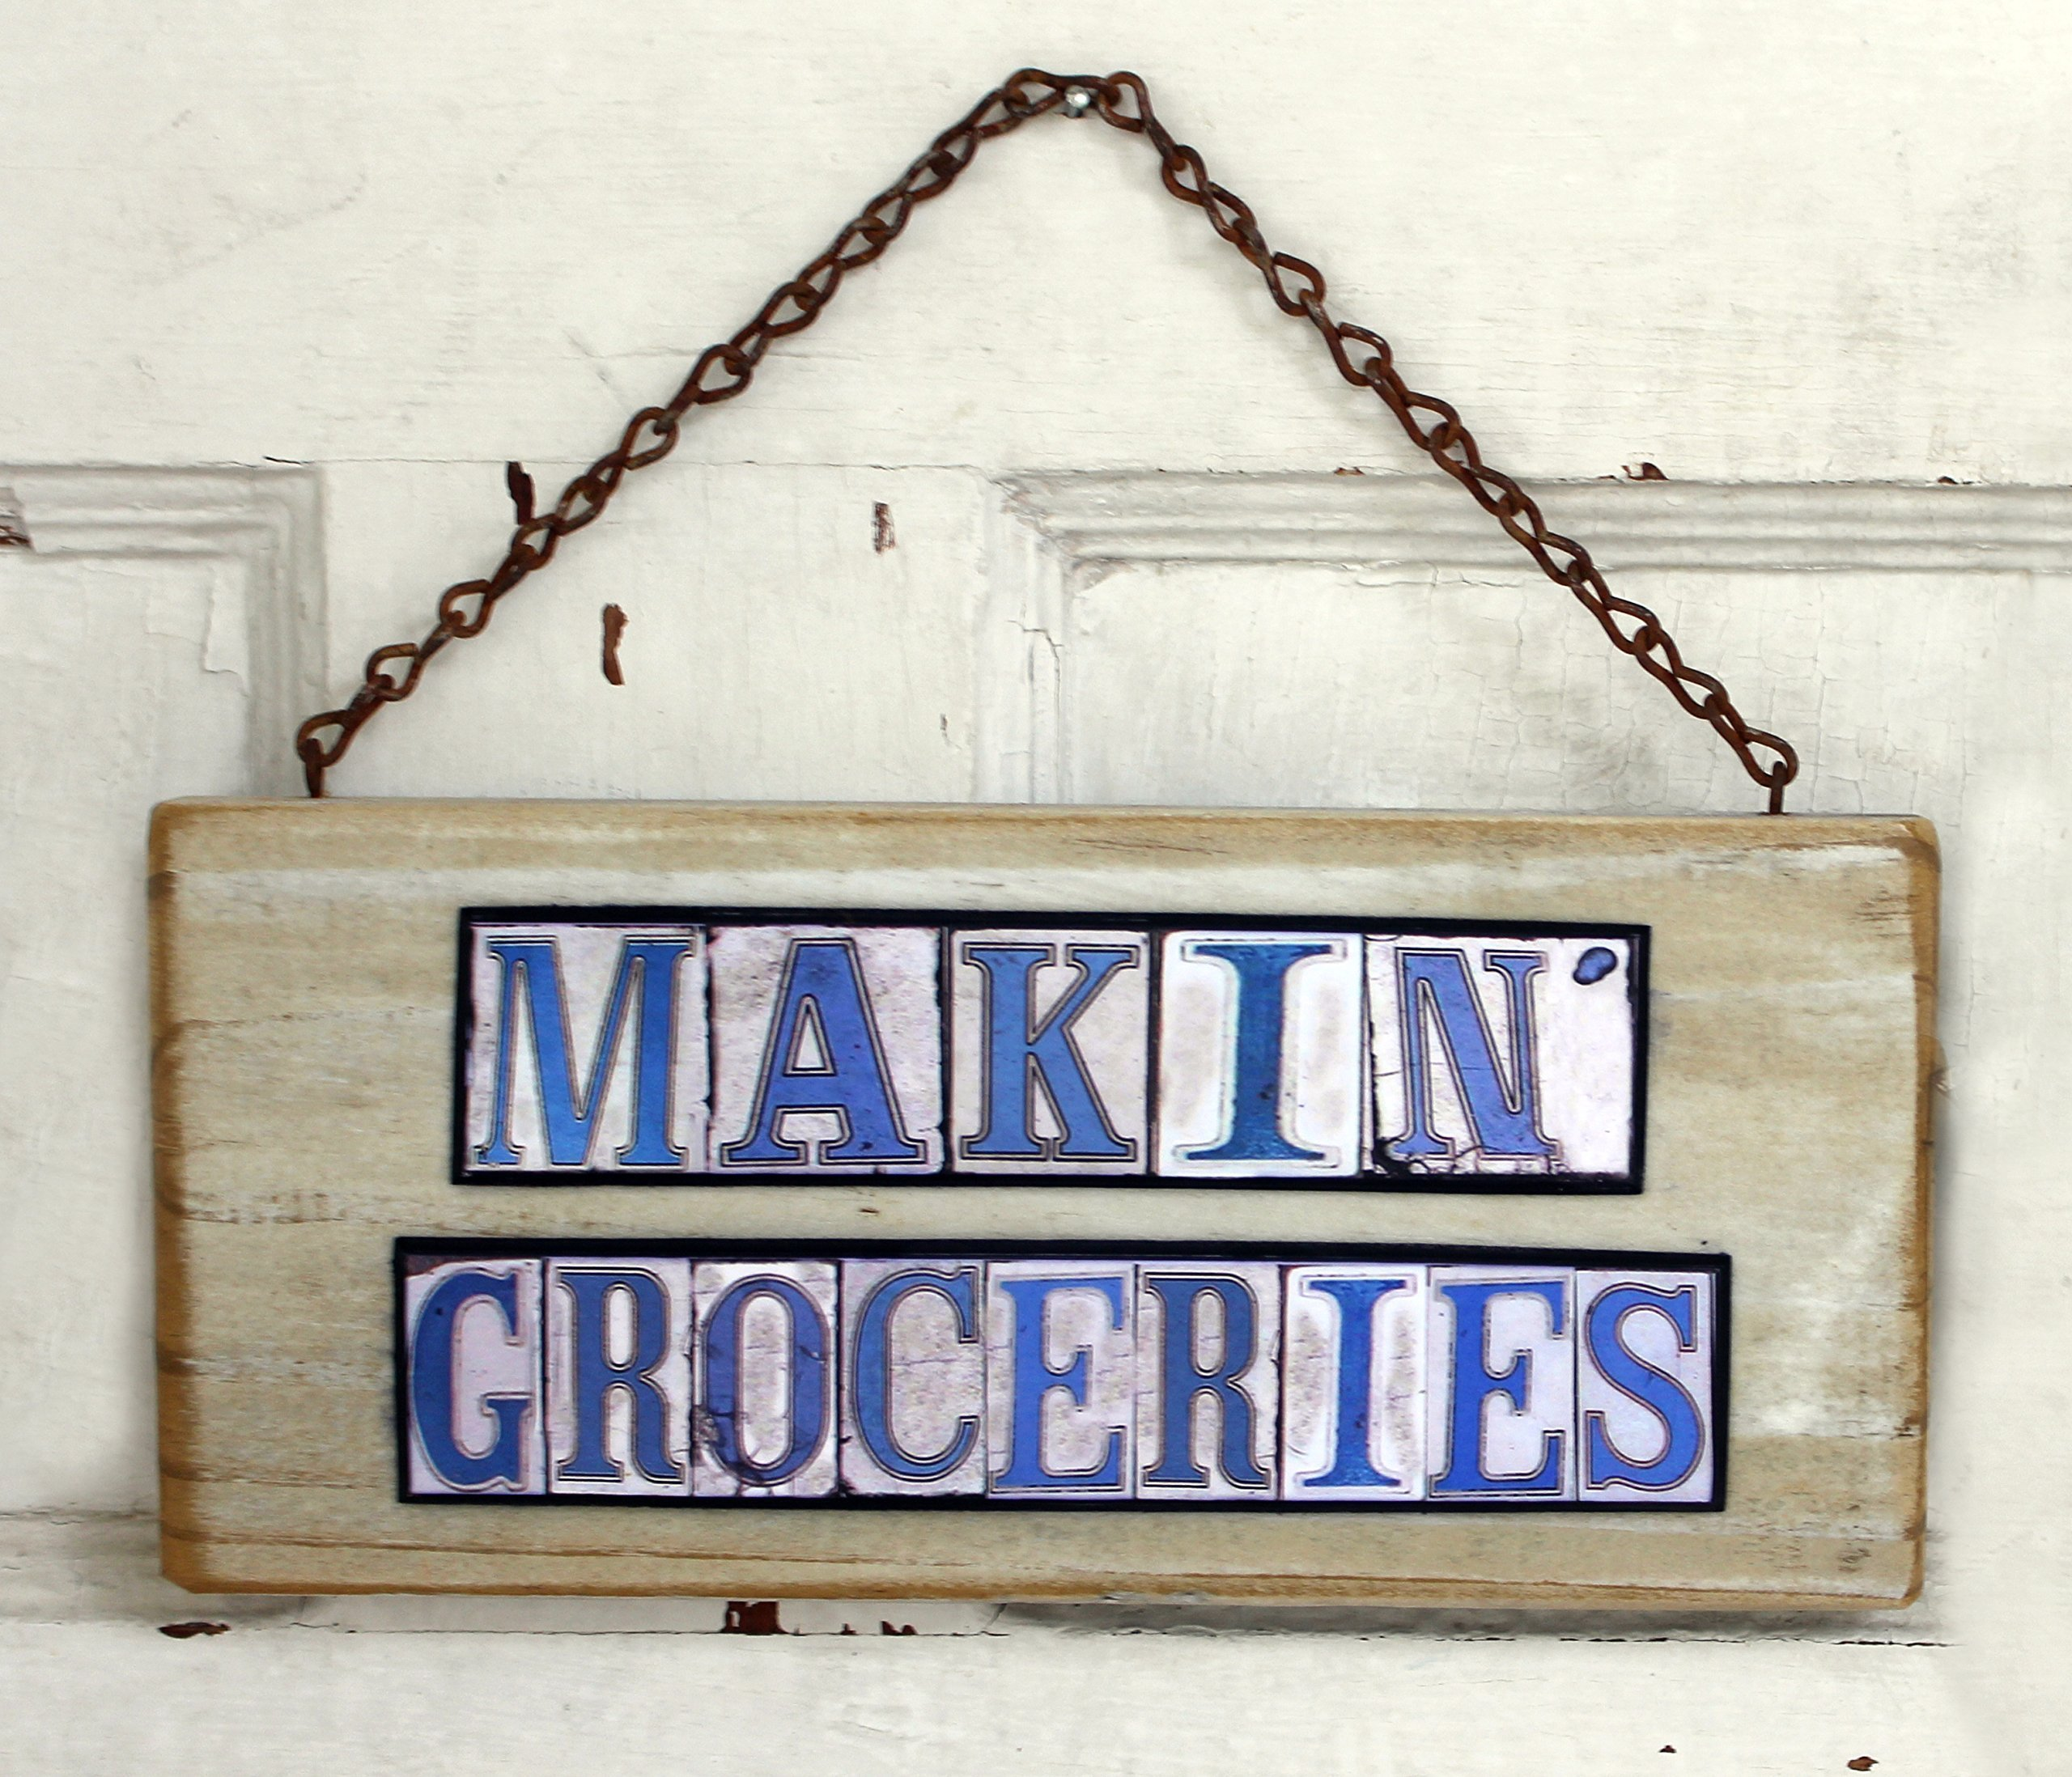 Makin' Groceries Salvage wood sign